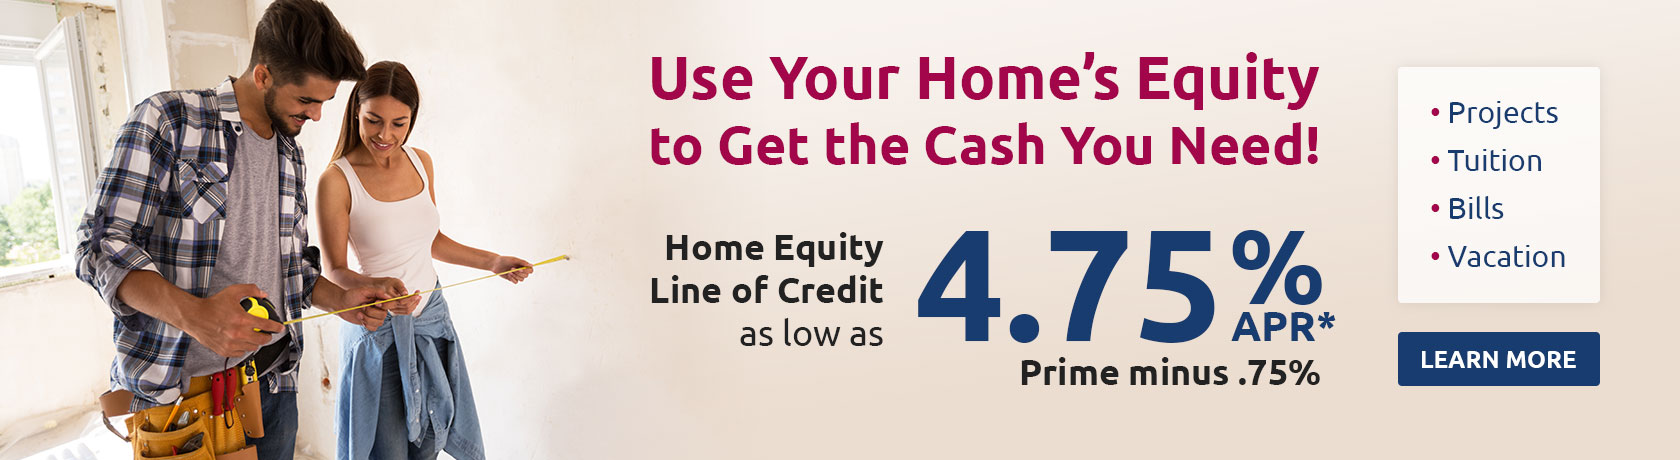 Use your home's equity to get the cash you need! Home Equity Line of Credit as low as 4.75% APR* prime minus .75%. Projects, tuition, bills, vacation. Learn More